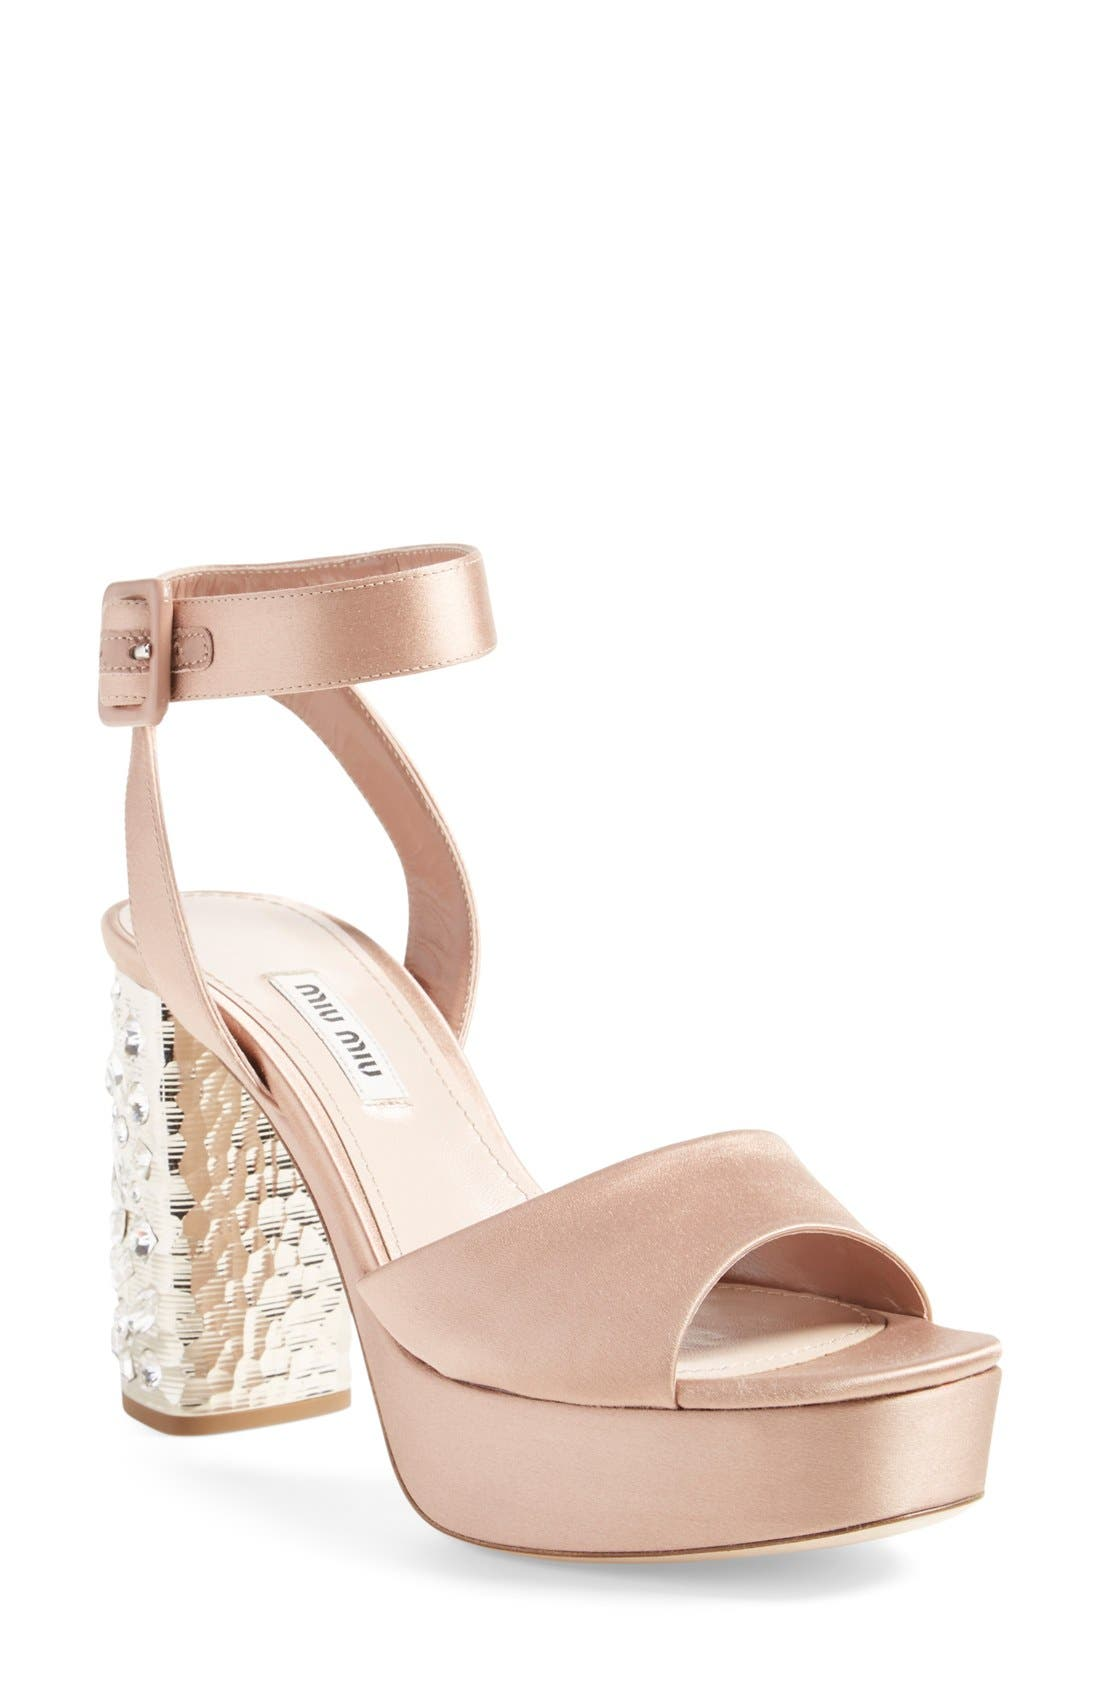 Alternate Image 1 Selected - Miu Miu Studded Block Heel Platform Sandal (Women) (Nordstrom Exclusive)